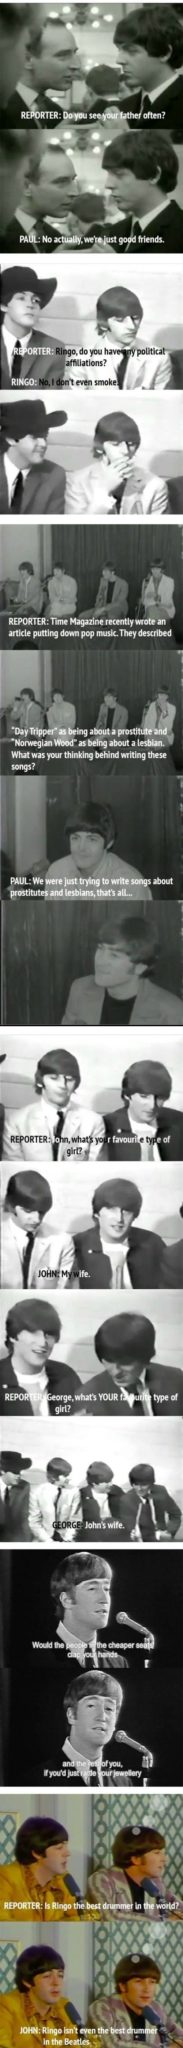 The Way That The Beatles Did Interviews Will Make You Love Them Even More